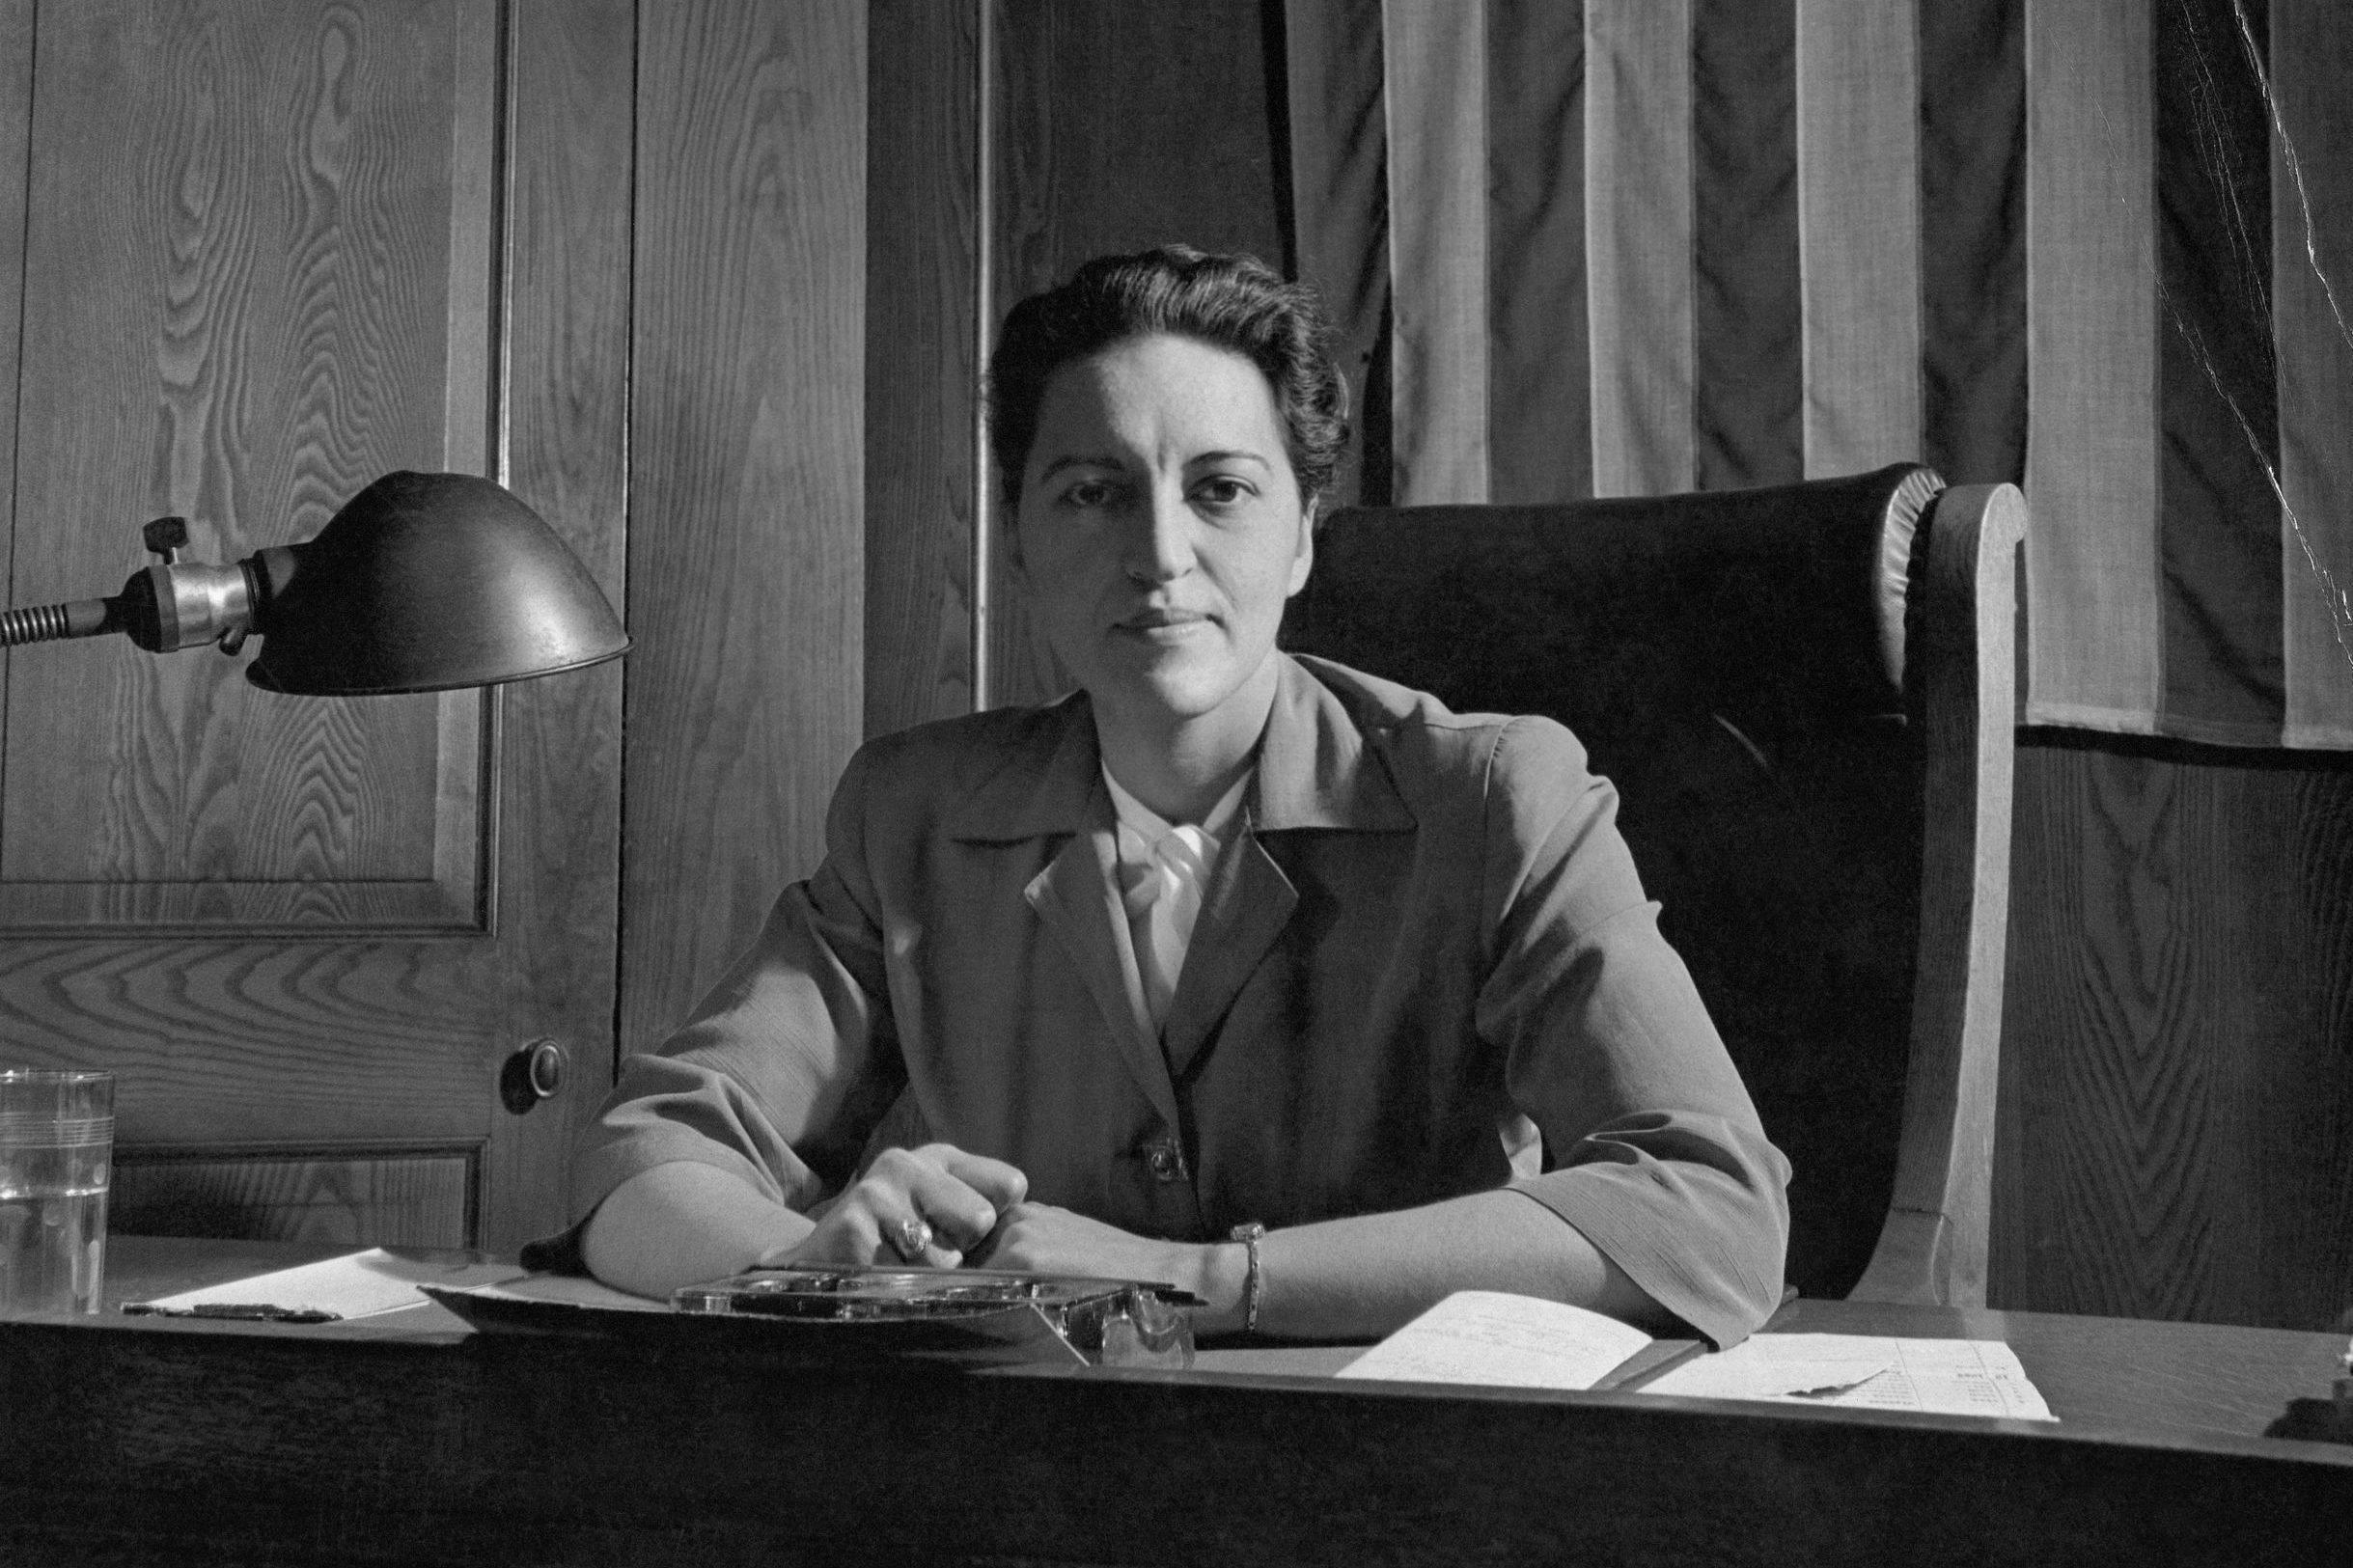 Justice Jane M. Bolin seated at her desk under an American flag